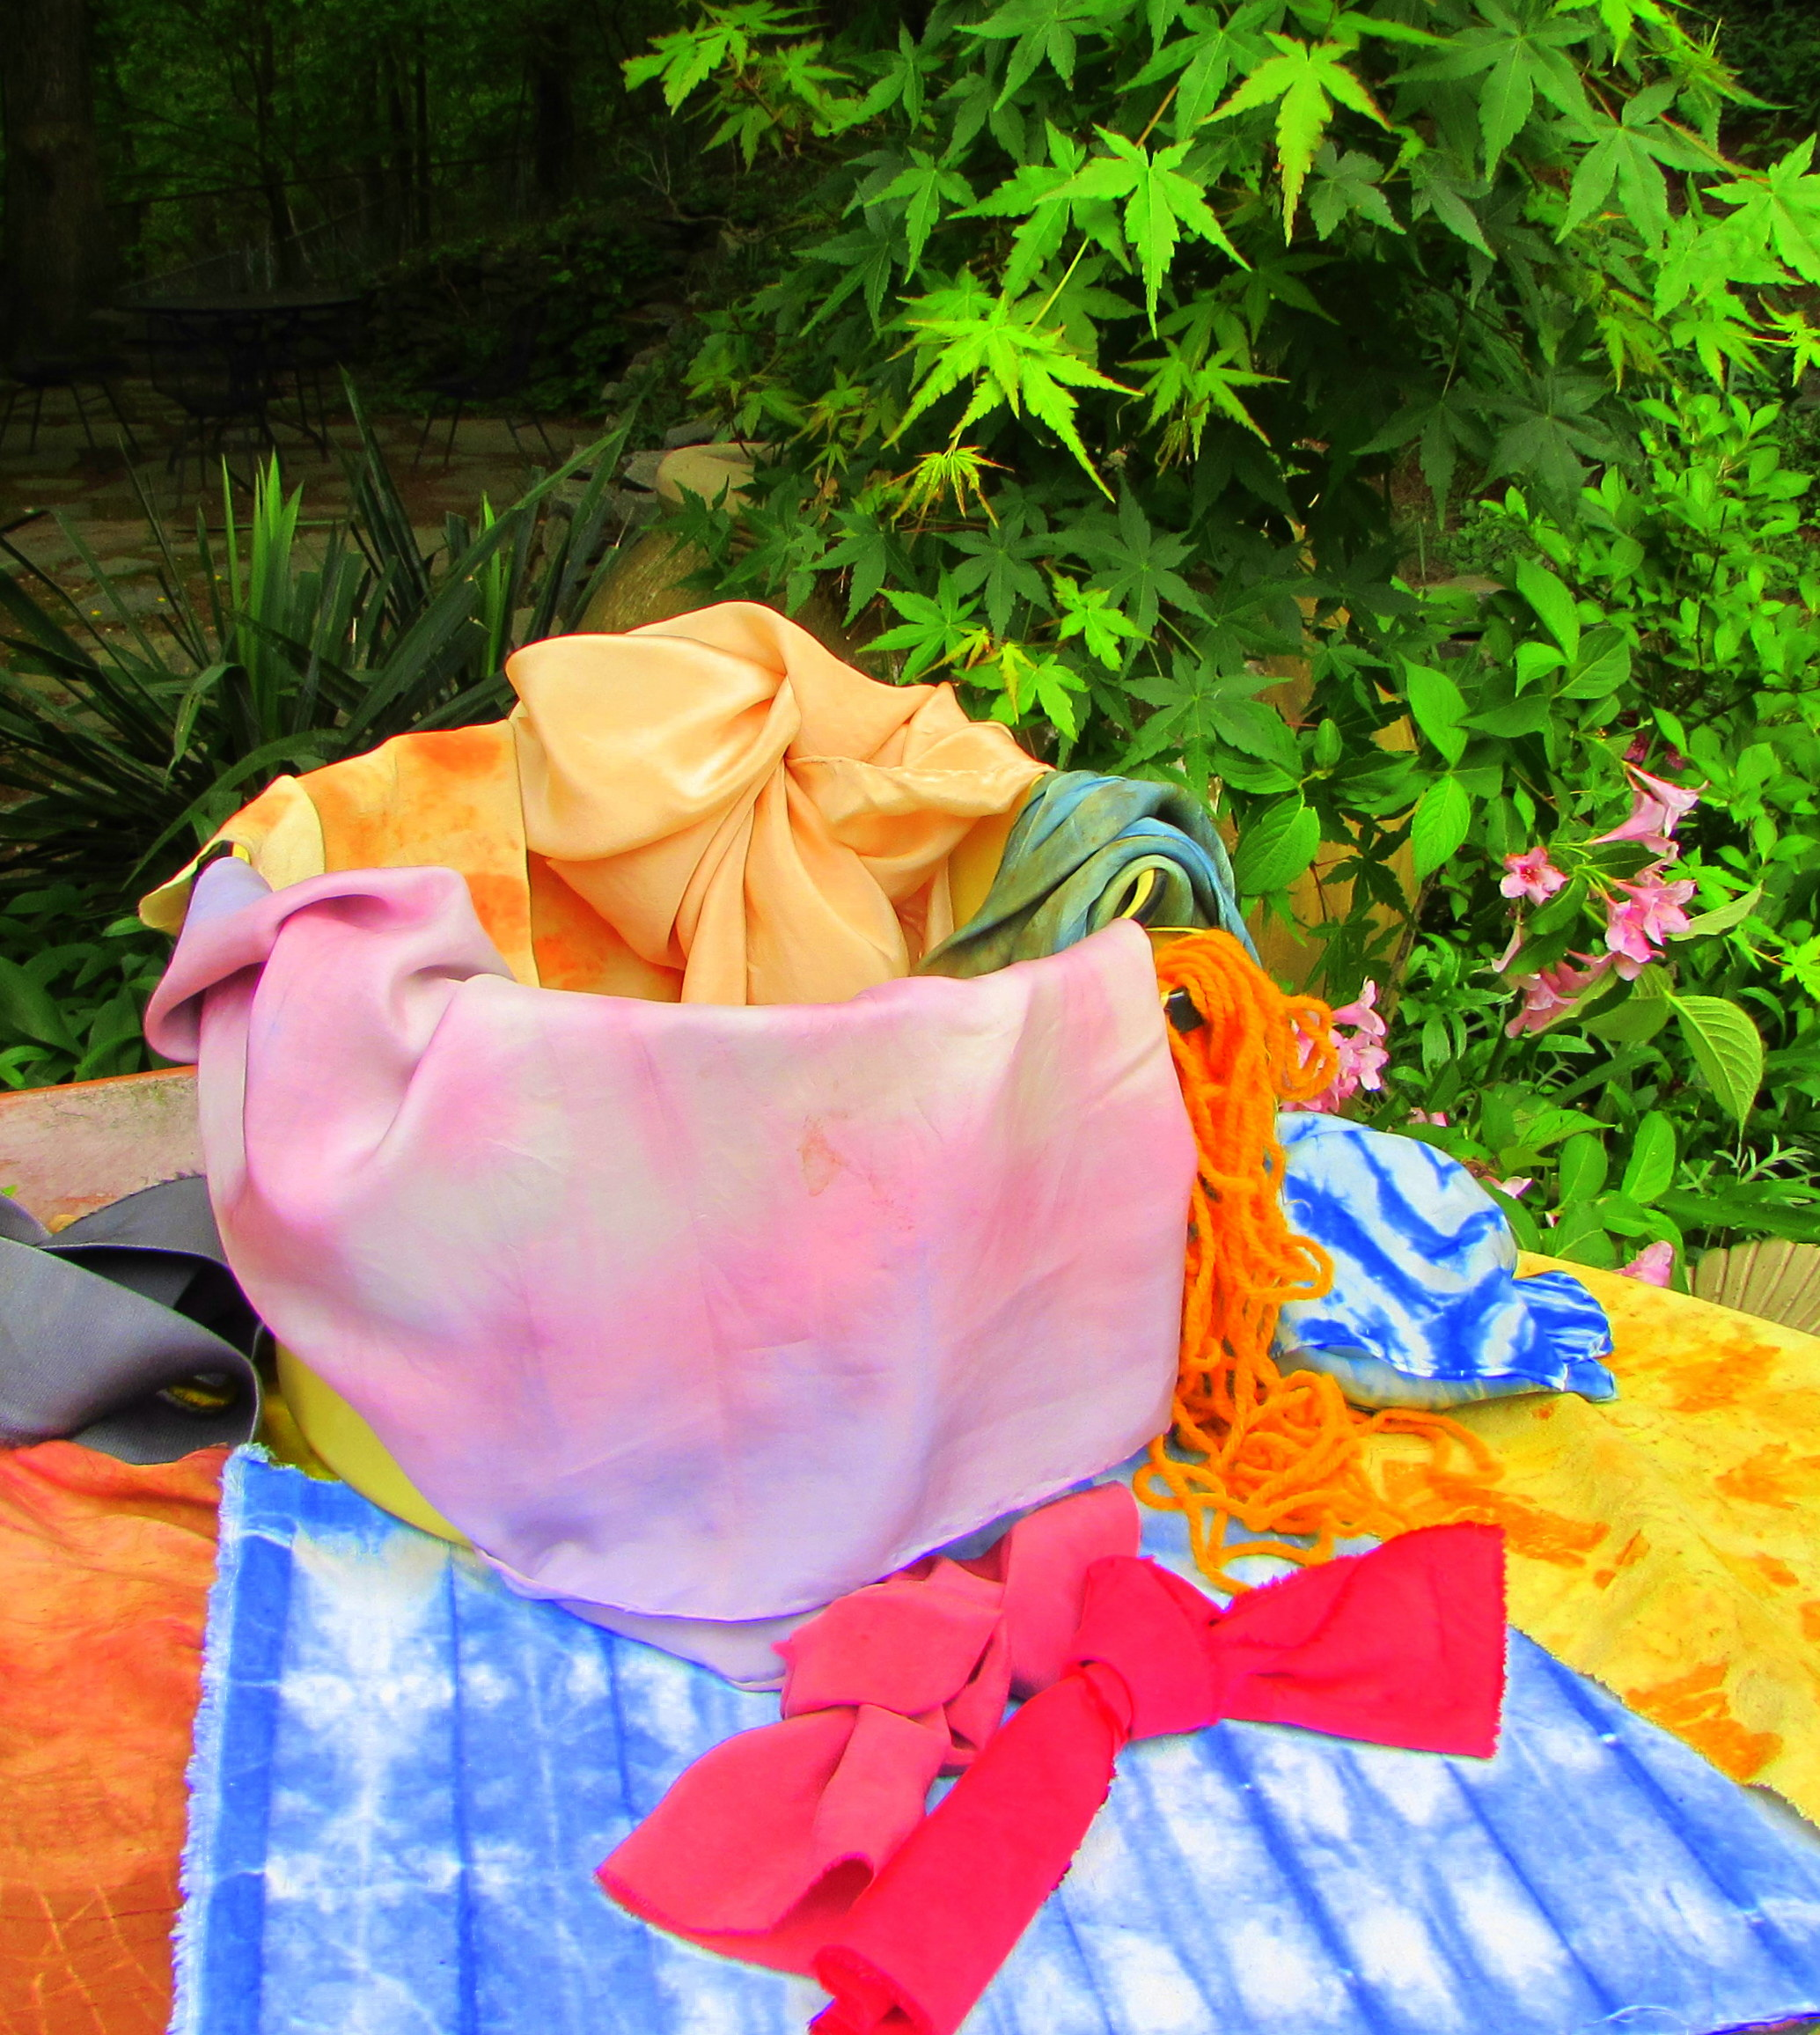 Naturally dyed textiles by resident artist Patricia Kessler